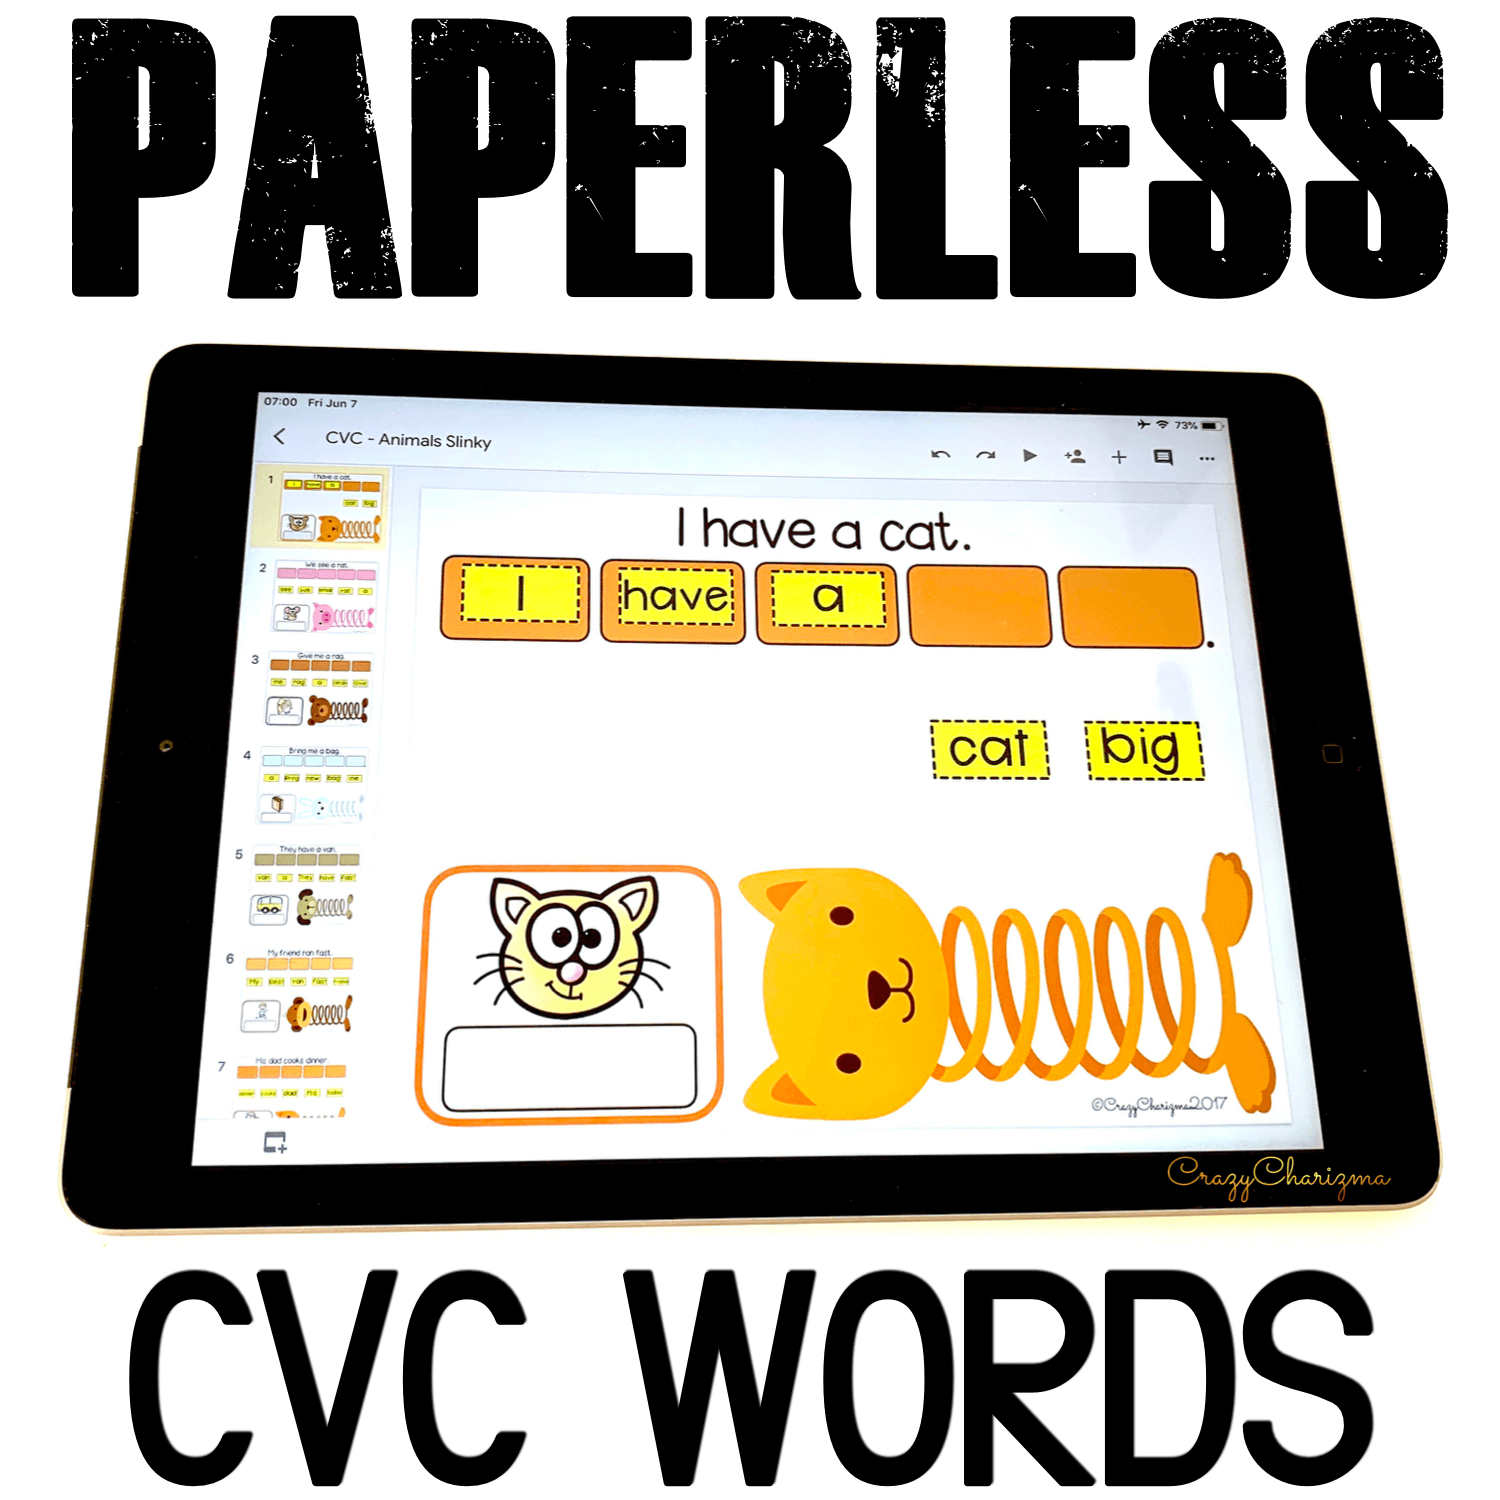 Google Classroom Activities for Kindergarten. CVC Words Games. Need to practice CVC words in sentences? I've got you covered! Try these paperless activities for Google Classroom. Use during your literacy block, daily 5, guided reading, spelling, RTI, and literacy centers. #CrazyCharizma #GoogleClassroom #GoogleClassroomKindergarten #HandsOnActivitiesForKids #PaperlessClassroomElementary #PhonicsGames